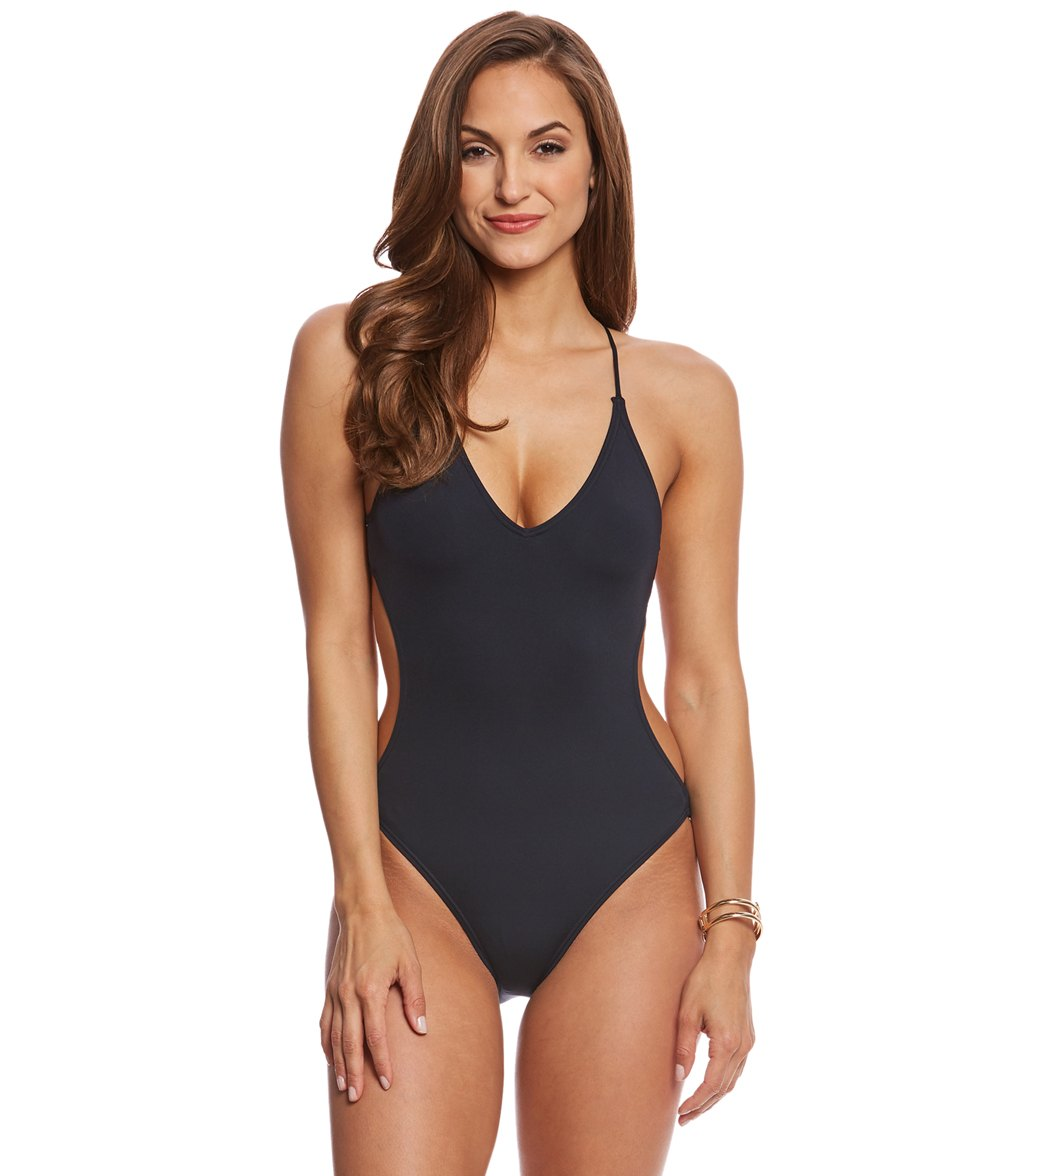 cc64cb9819b ... Plunge Strappy Back One Piece Swimsuit. Play Video. MODEL MEASUREMENTS